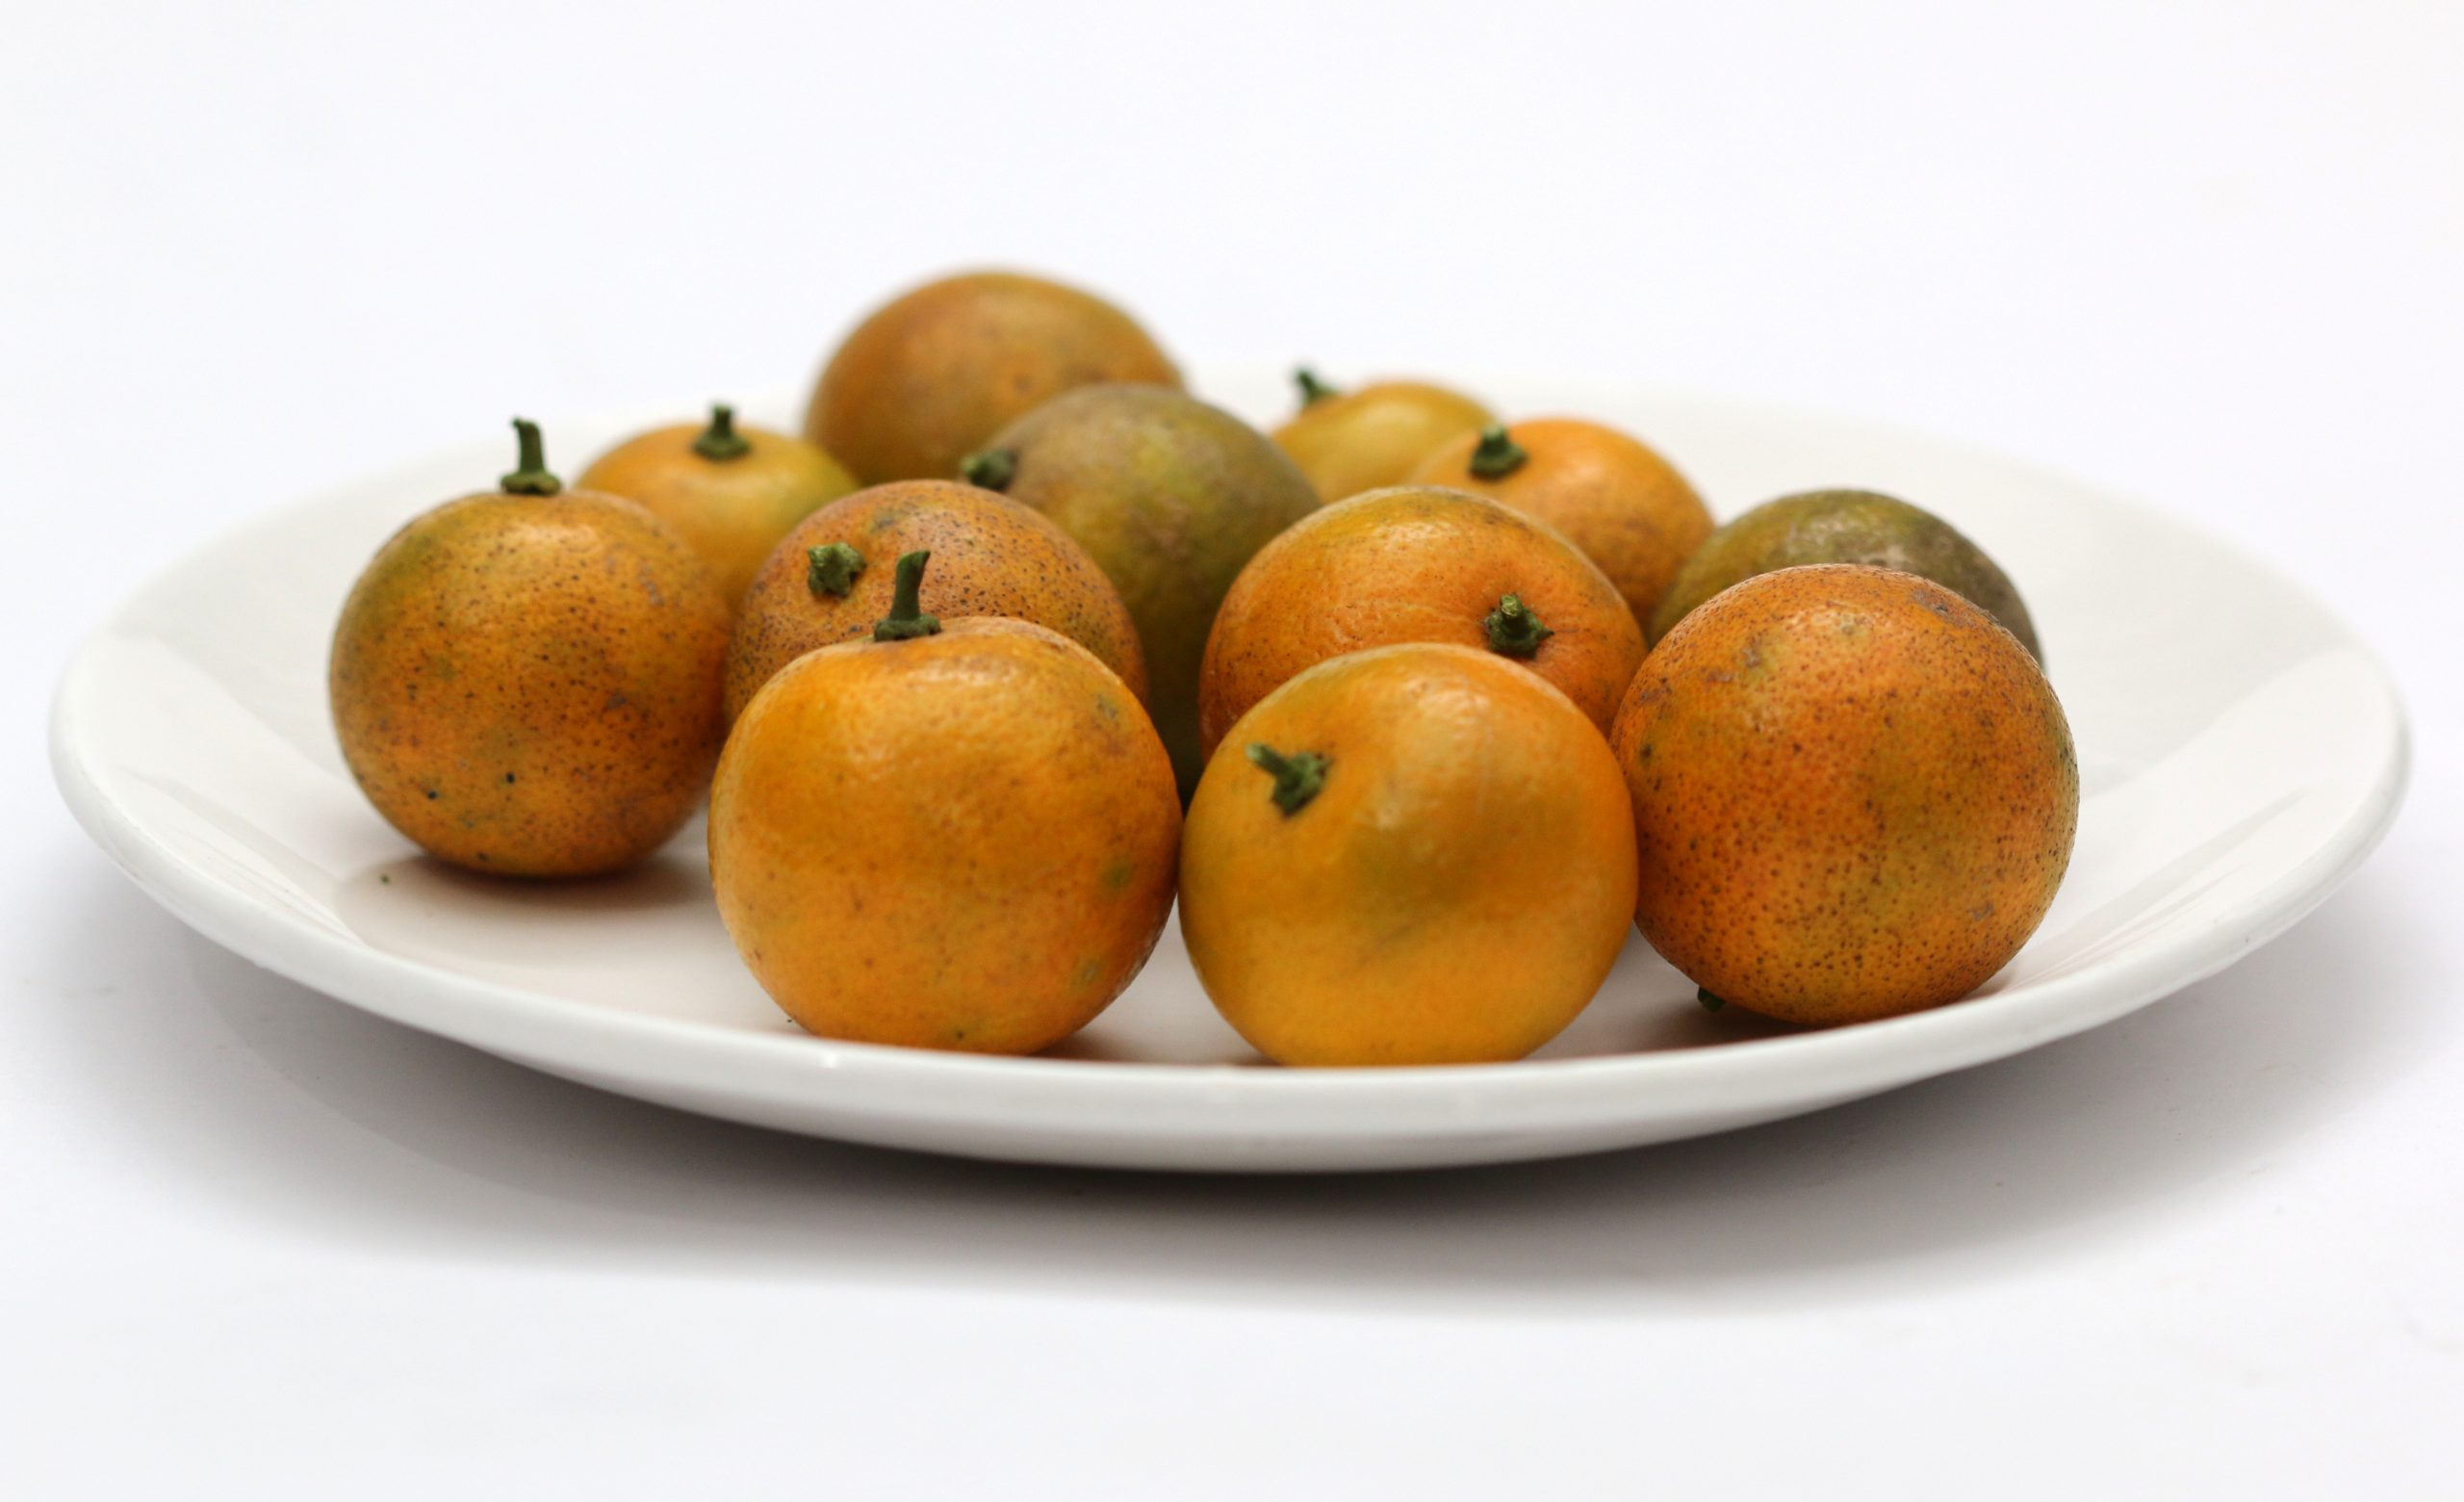 Small oranges in a plate